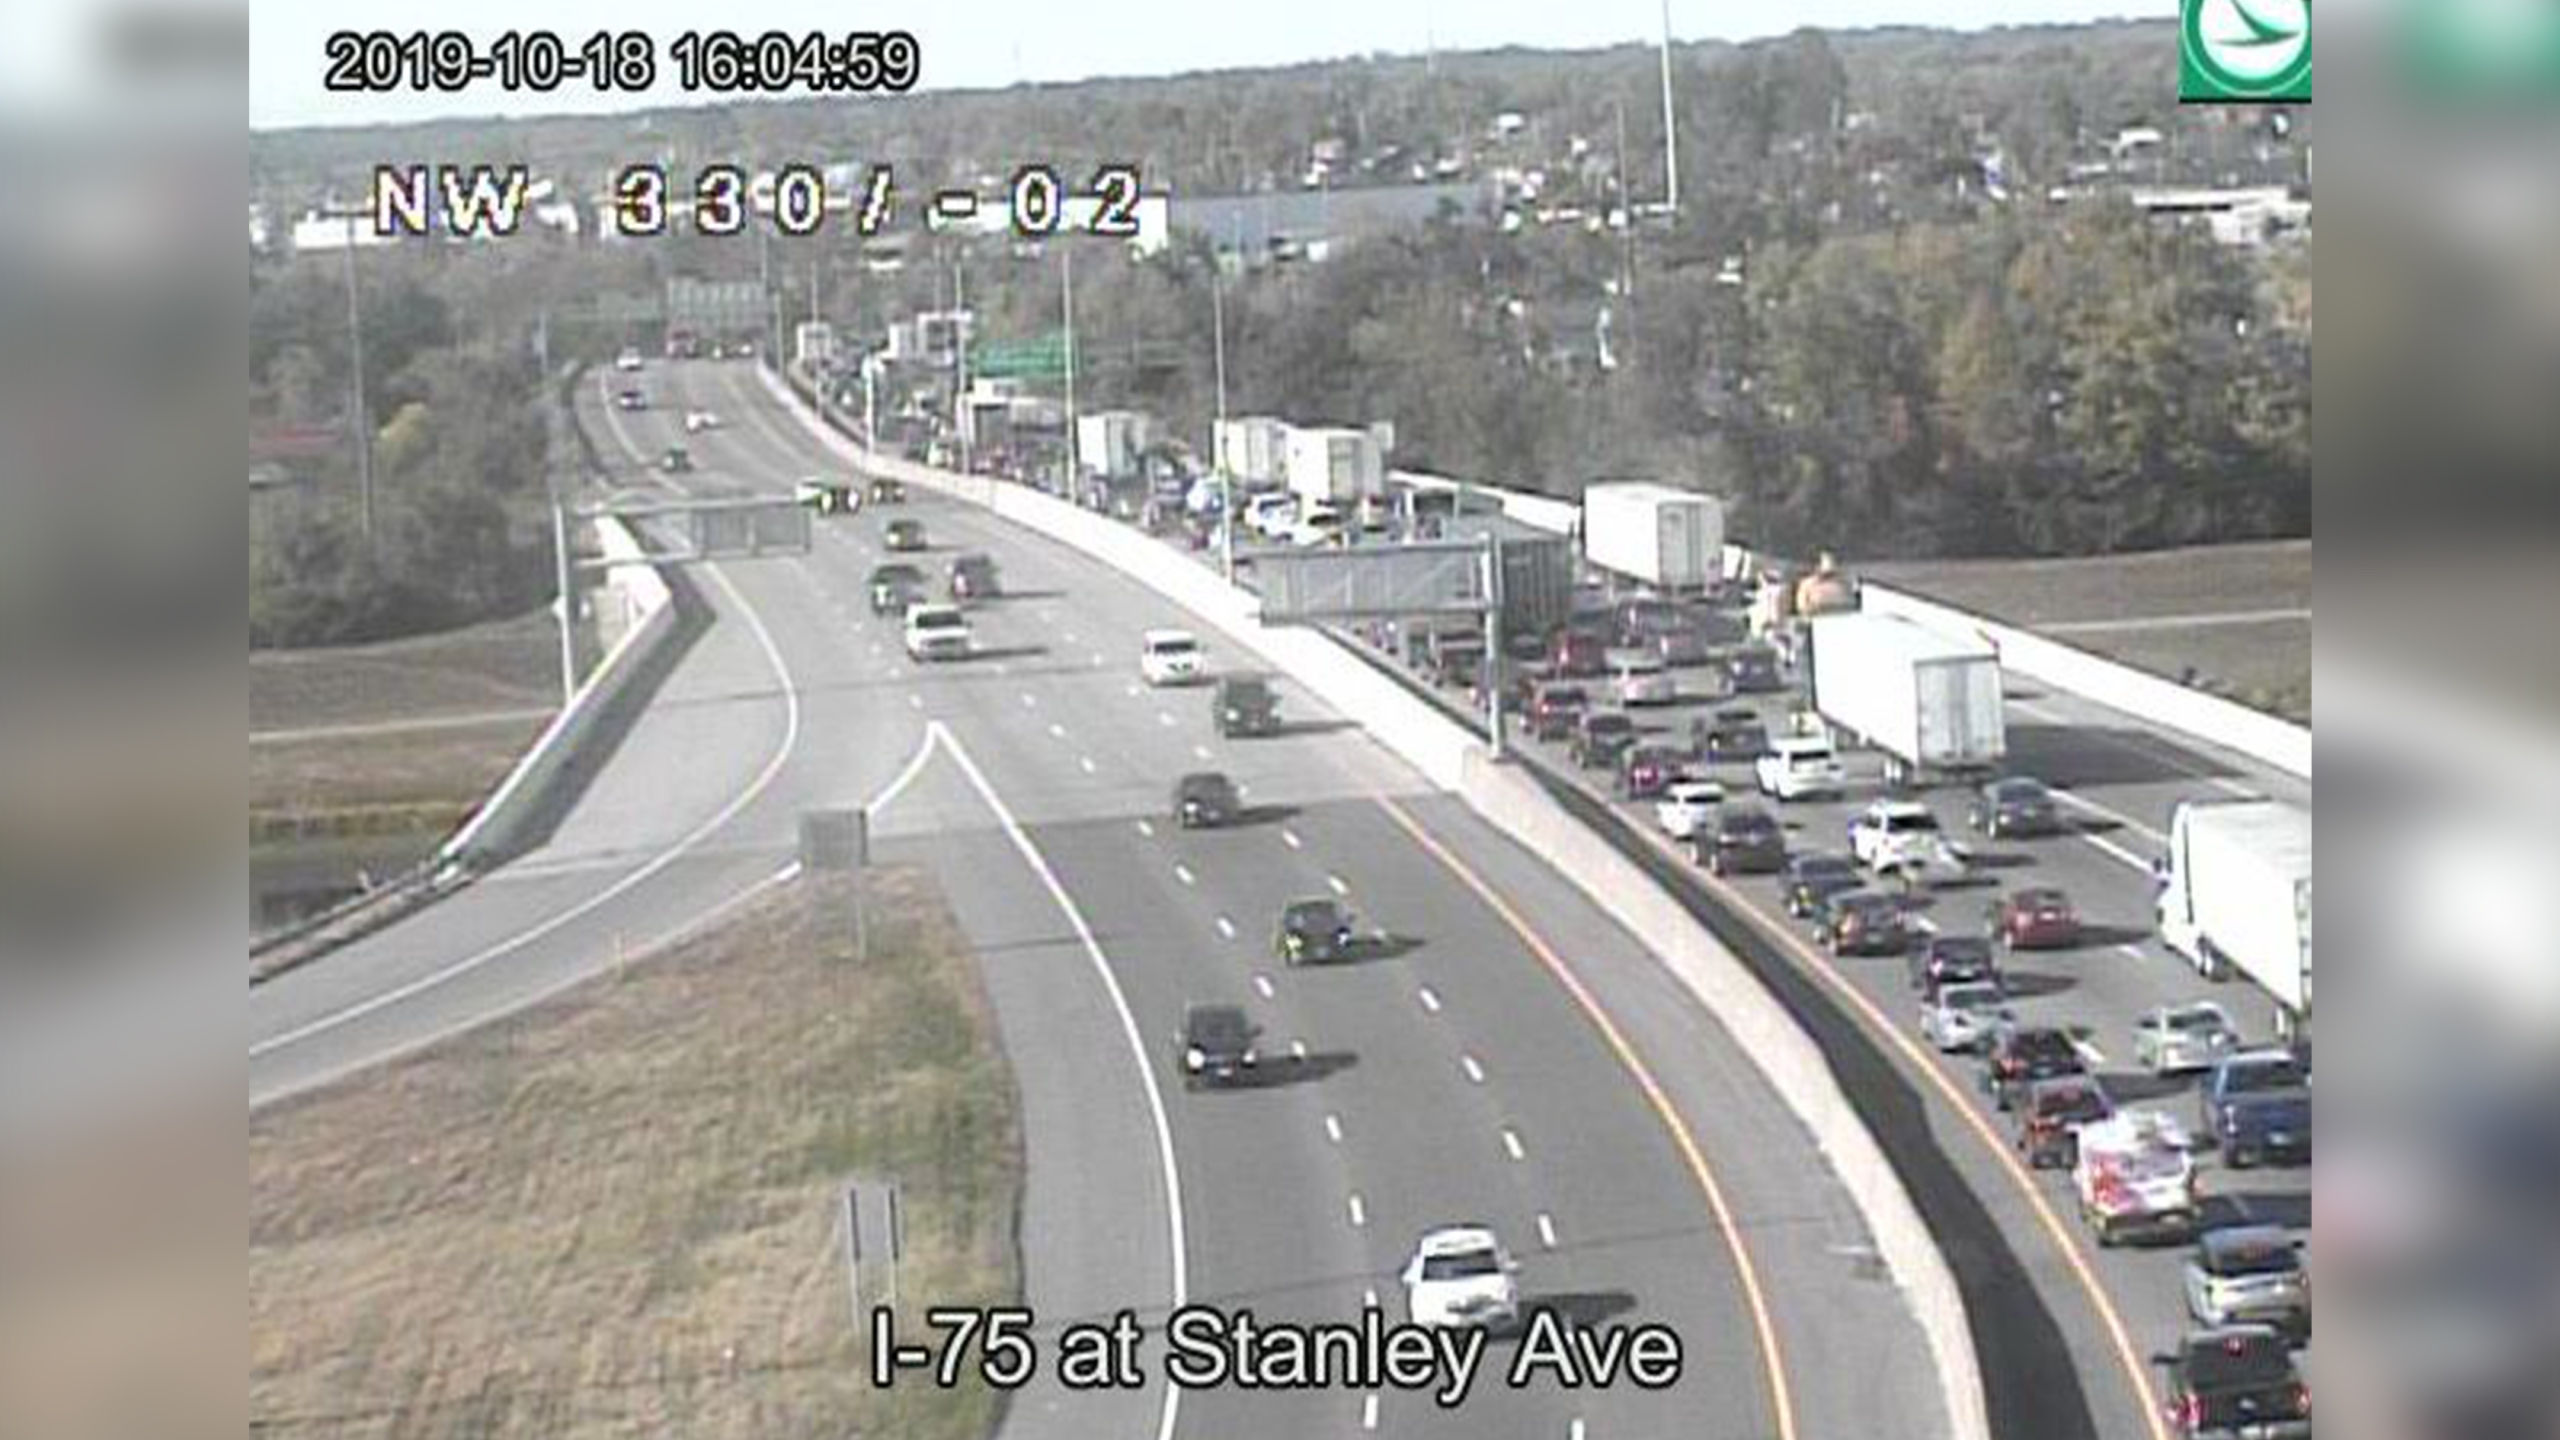 I-75 at Stanley Ave